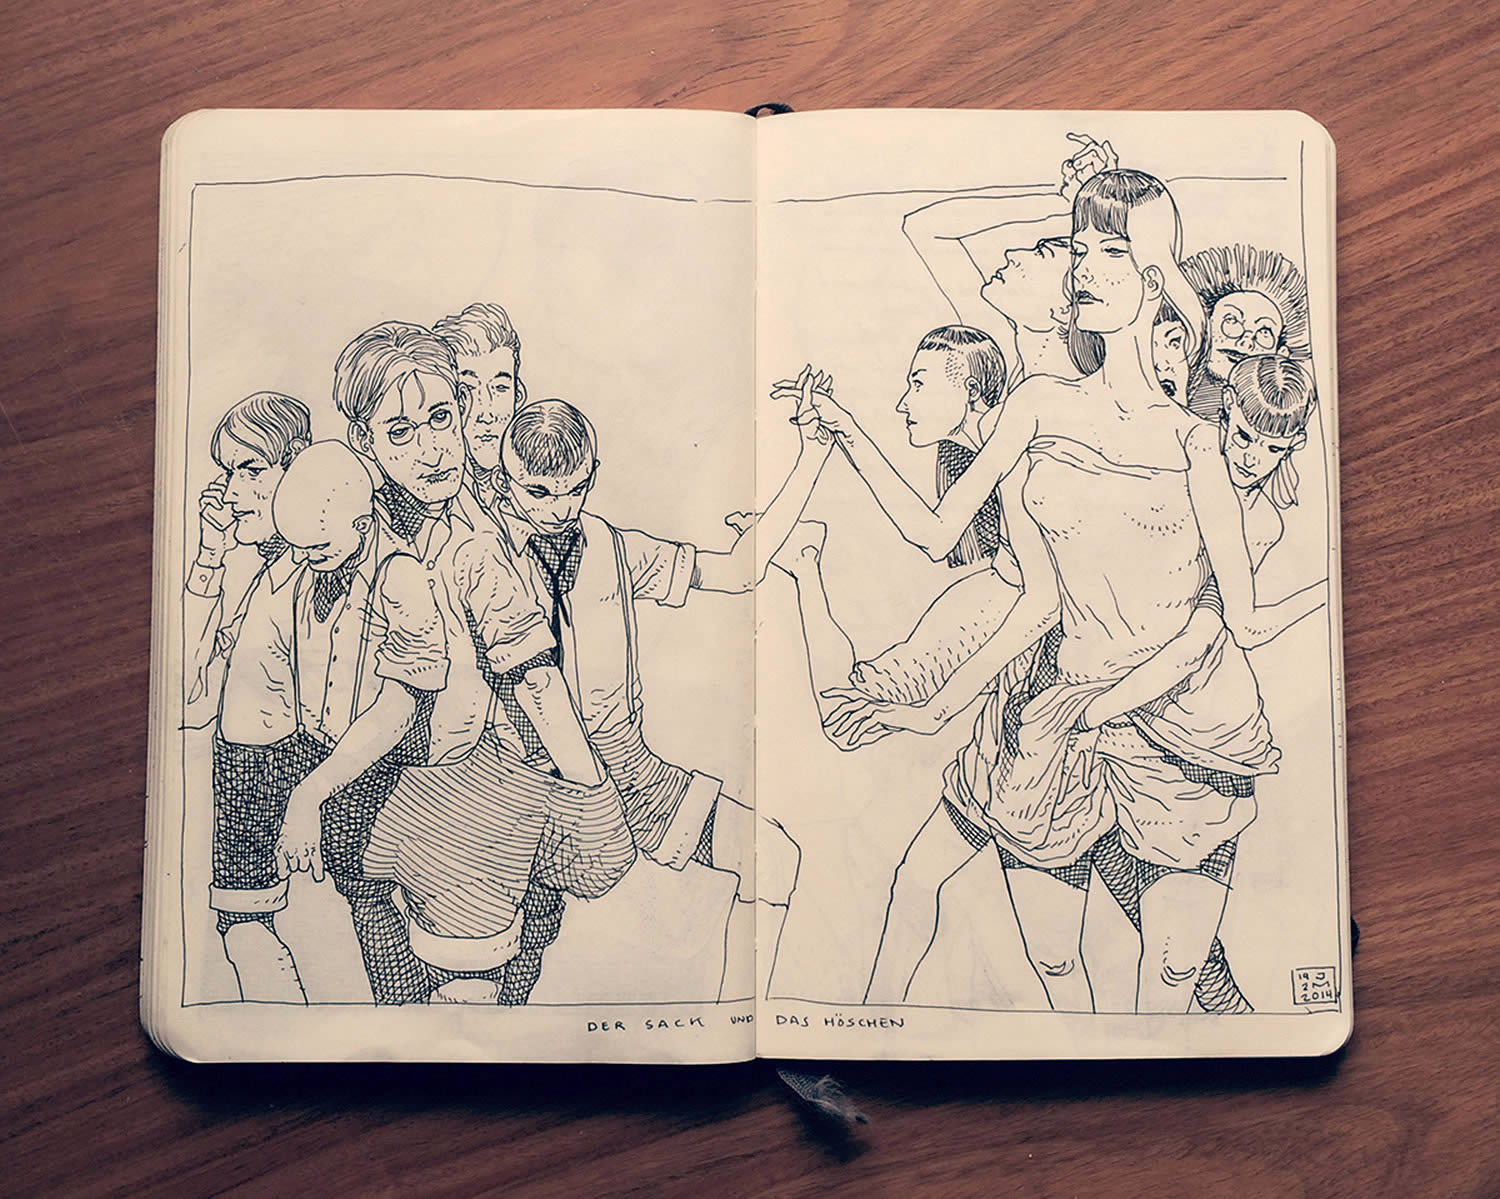 people holding hands, sketchbook drawing by Jared Muralt